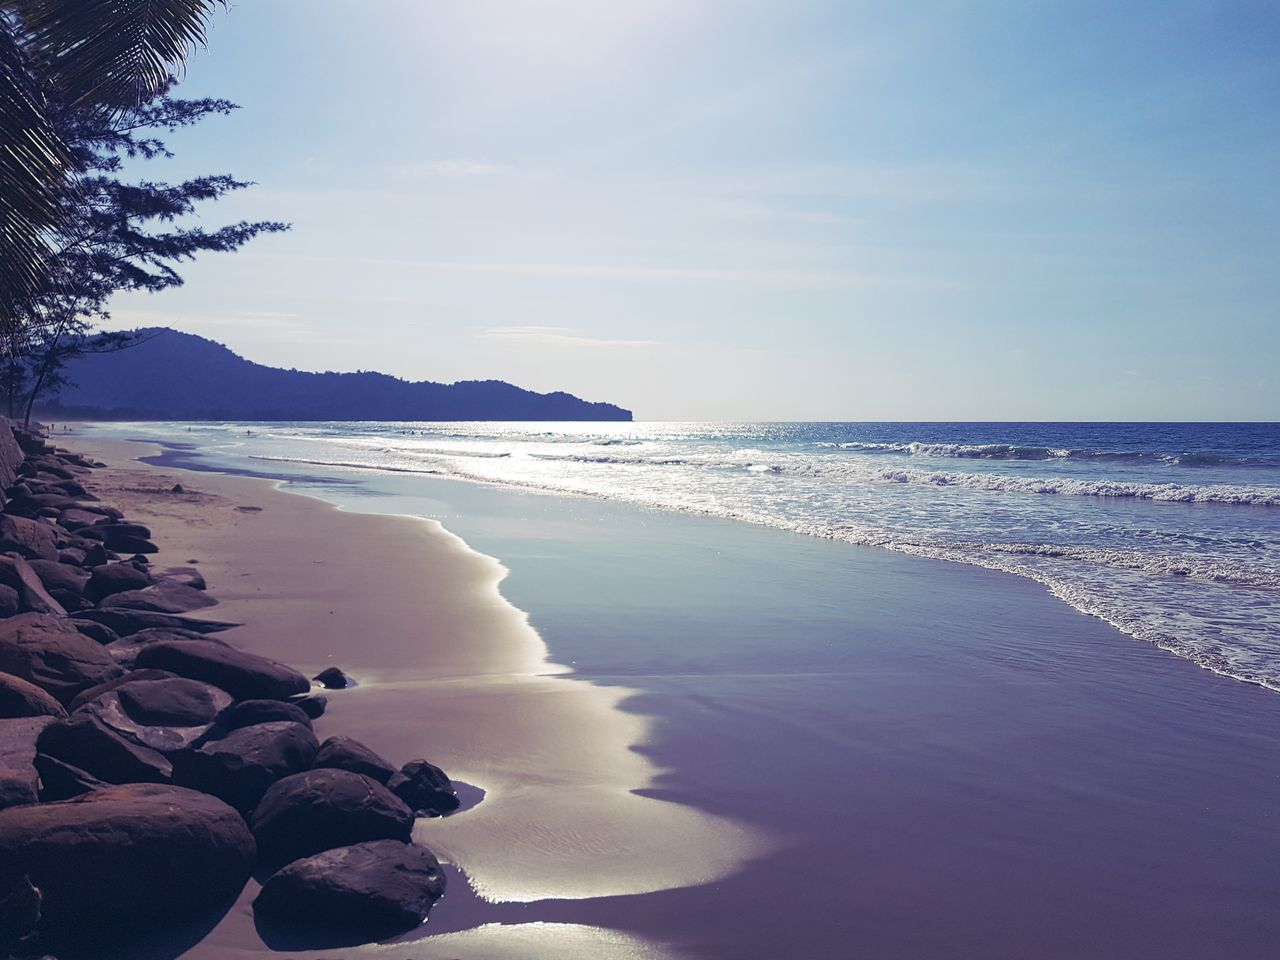 sea, beauty in nature, scenics, horizon over water, nature, water, beach, tranquility, sky, tranquil scene, no people, outdoors, sand, day, wave